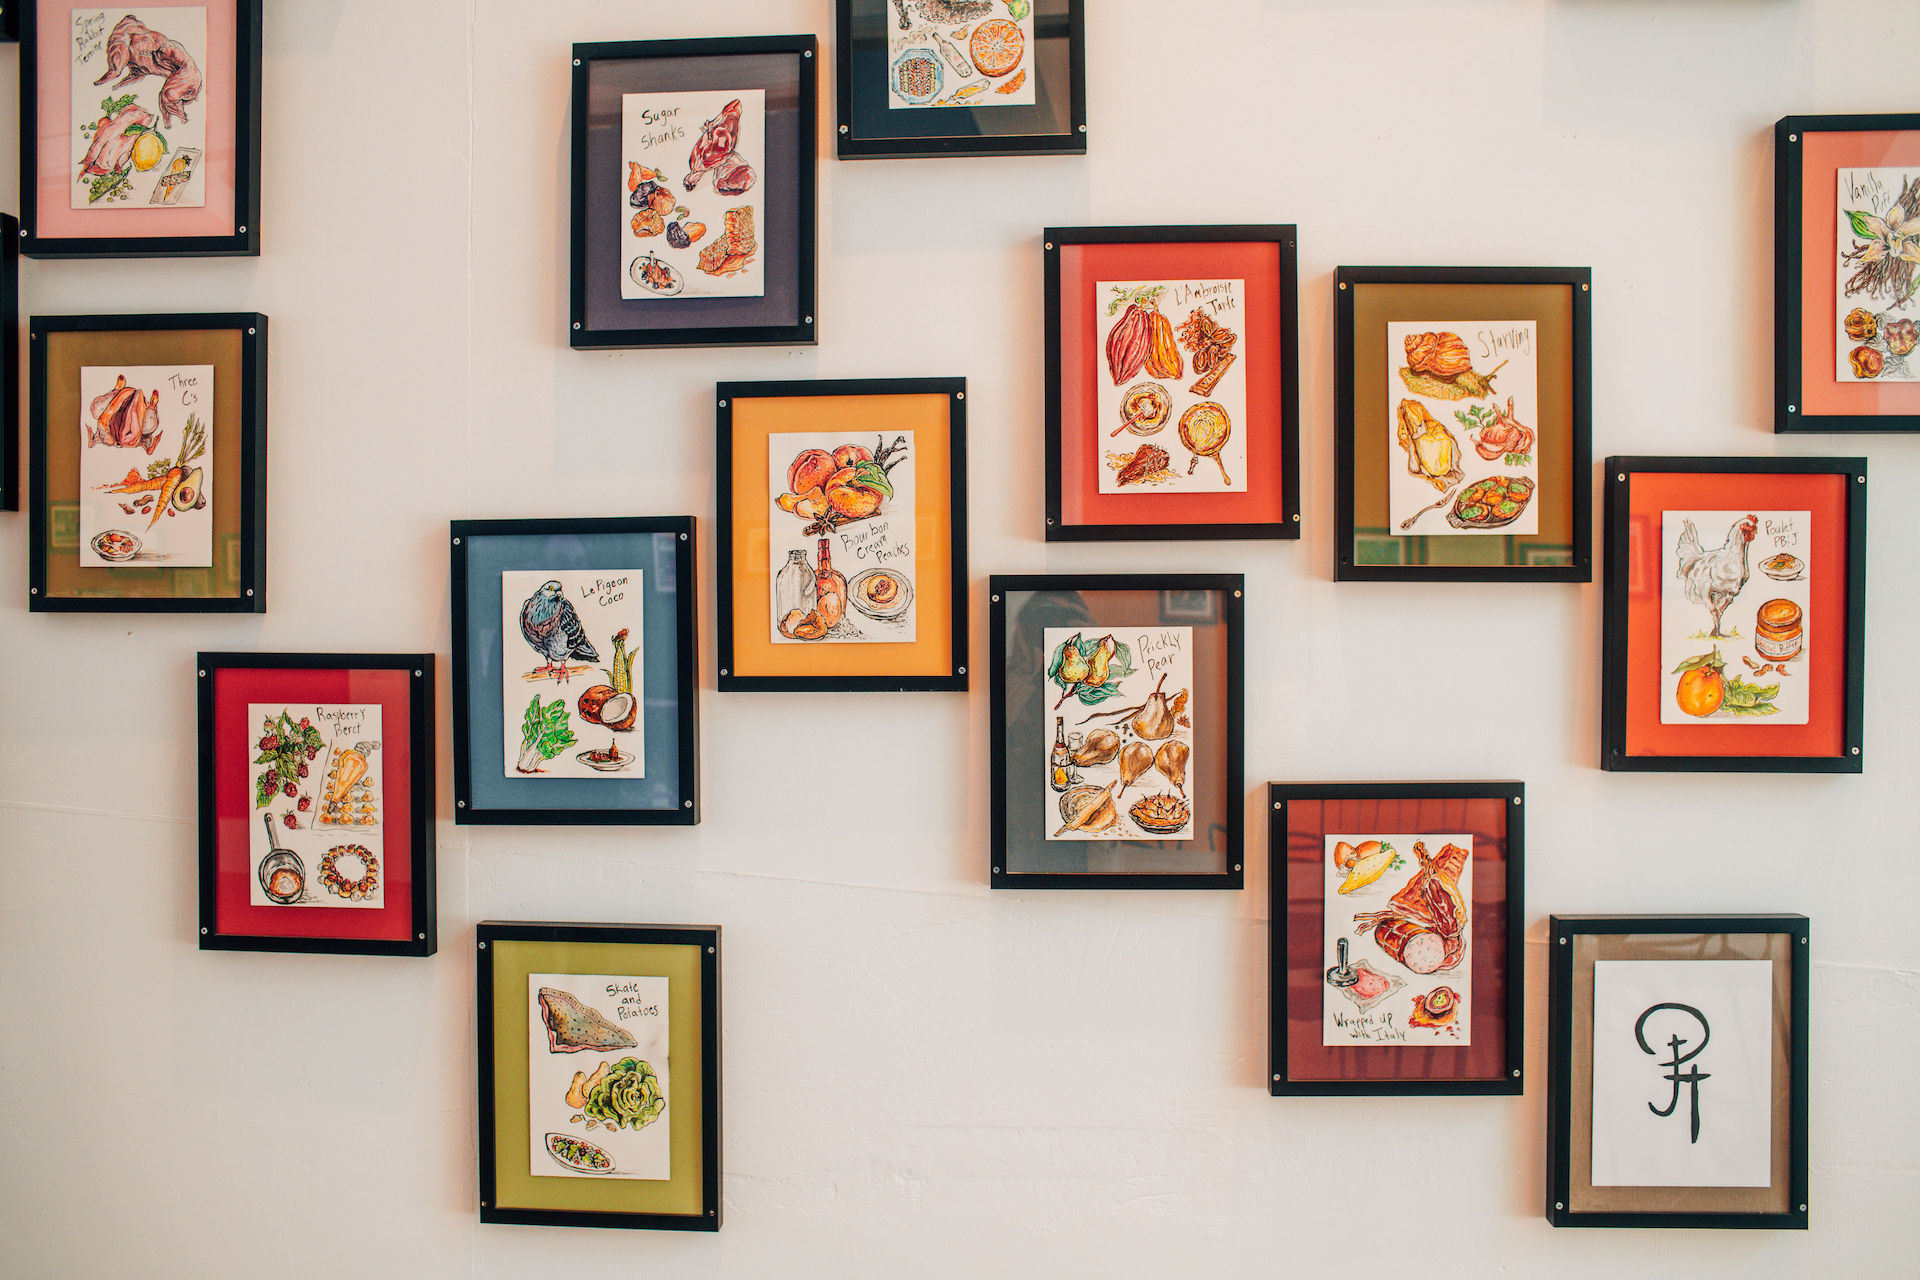 Some of Hemsley's art is on display at Palette's gallery.